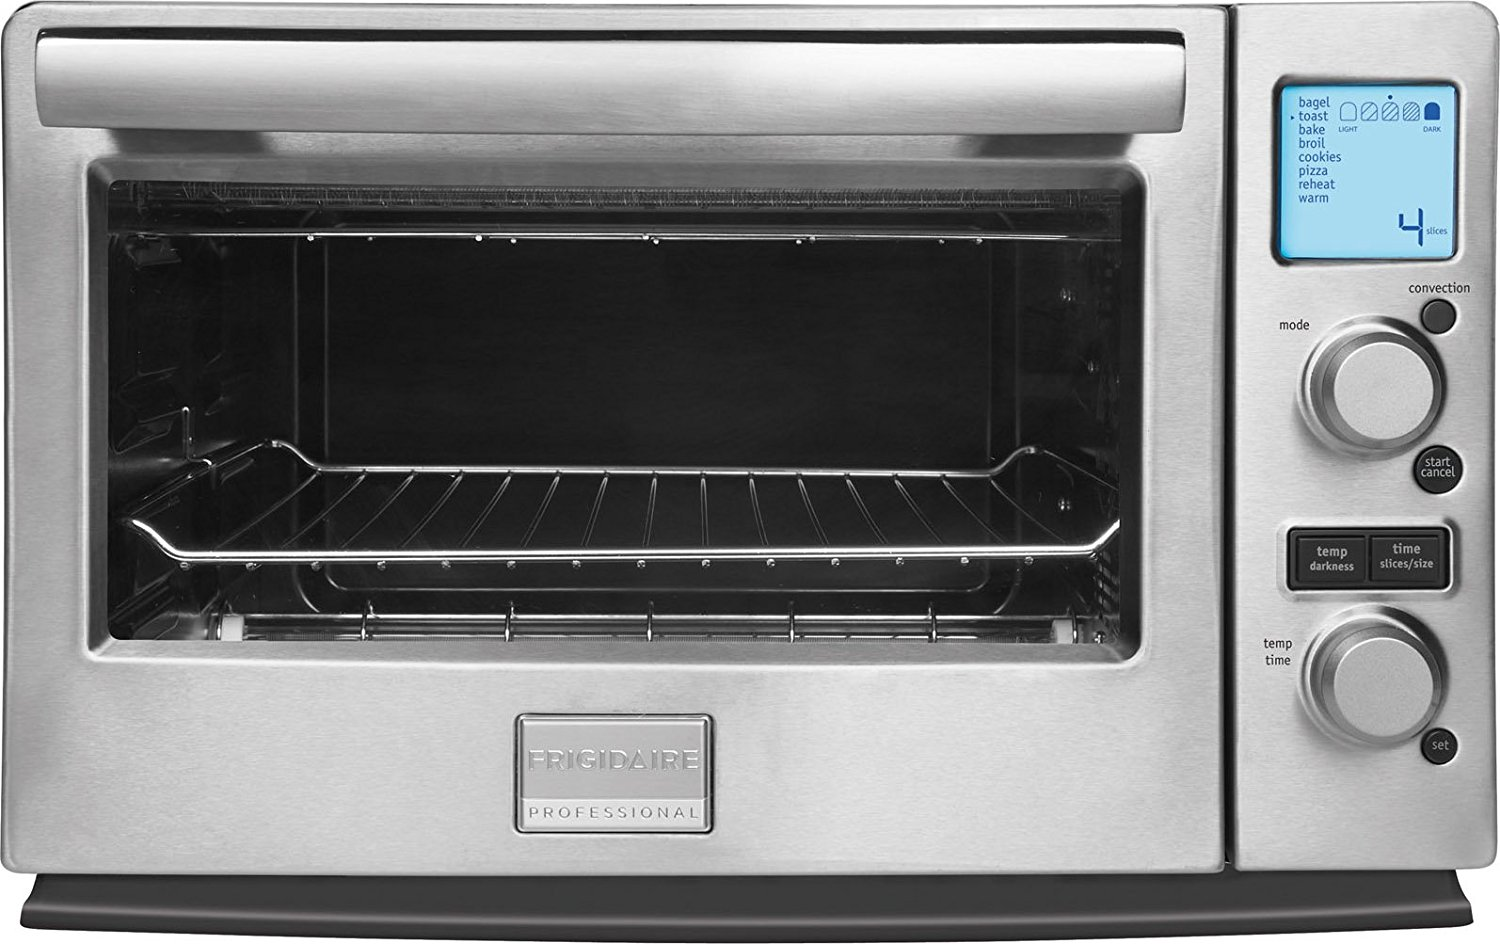 Frigidaire Professional Toaster Oven